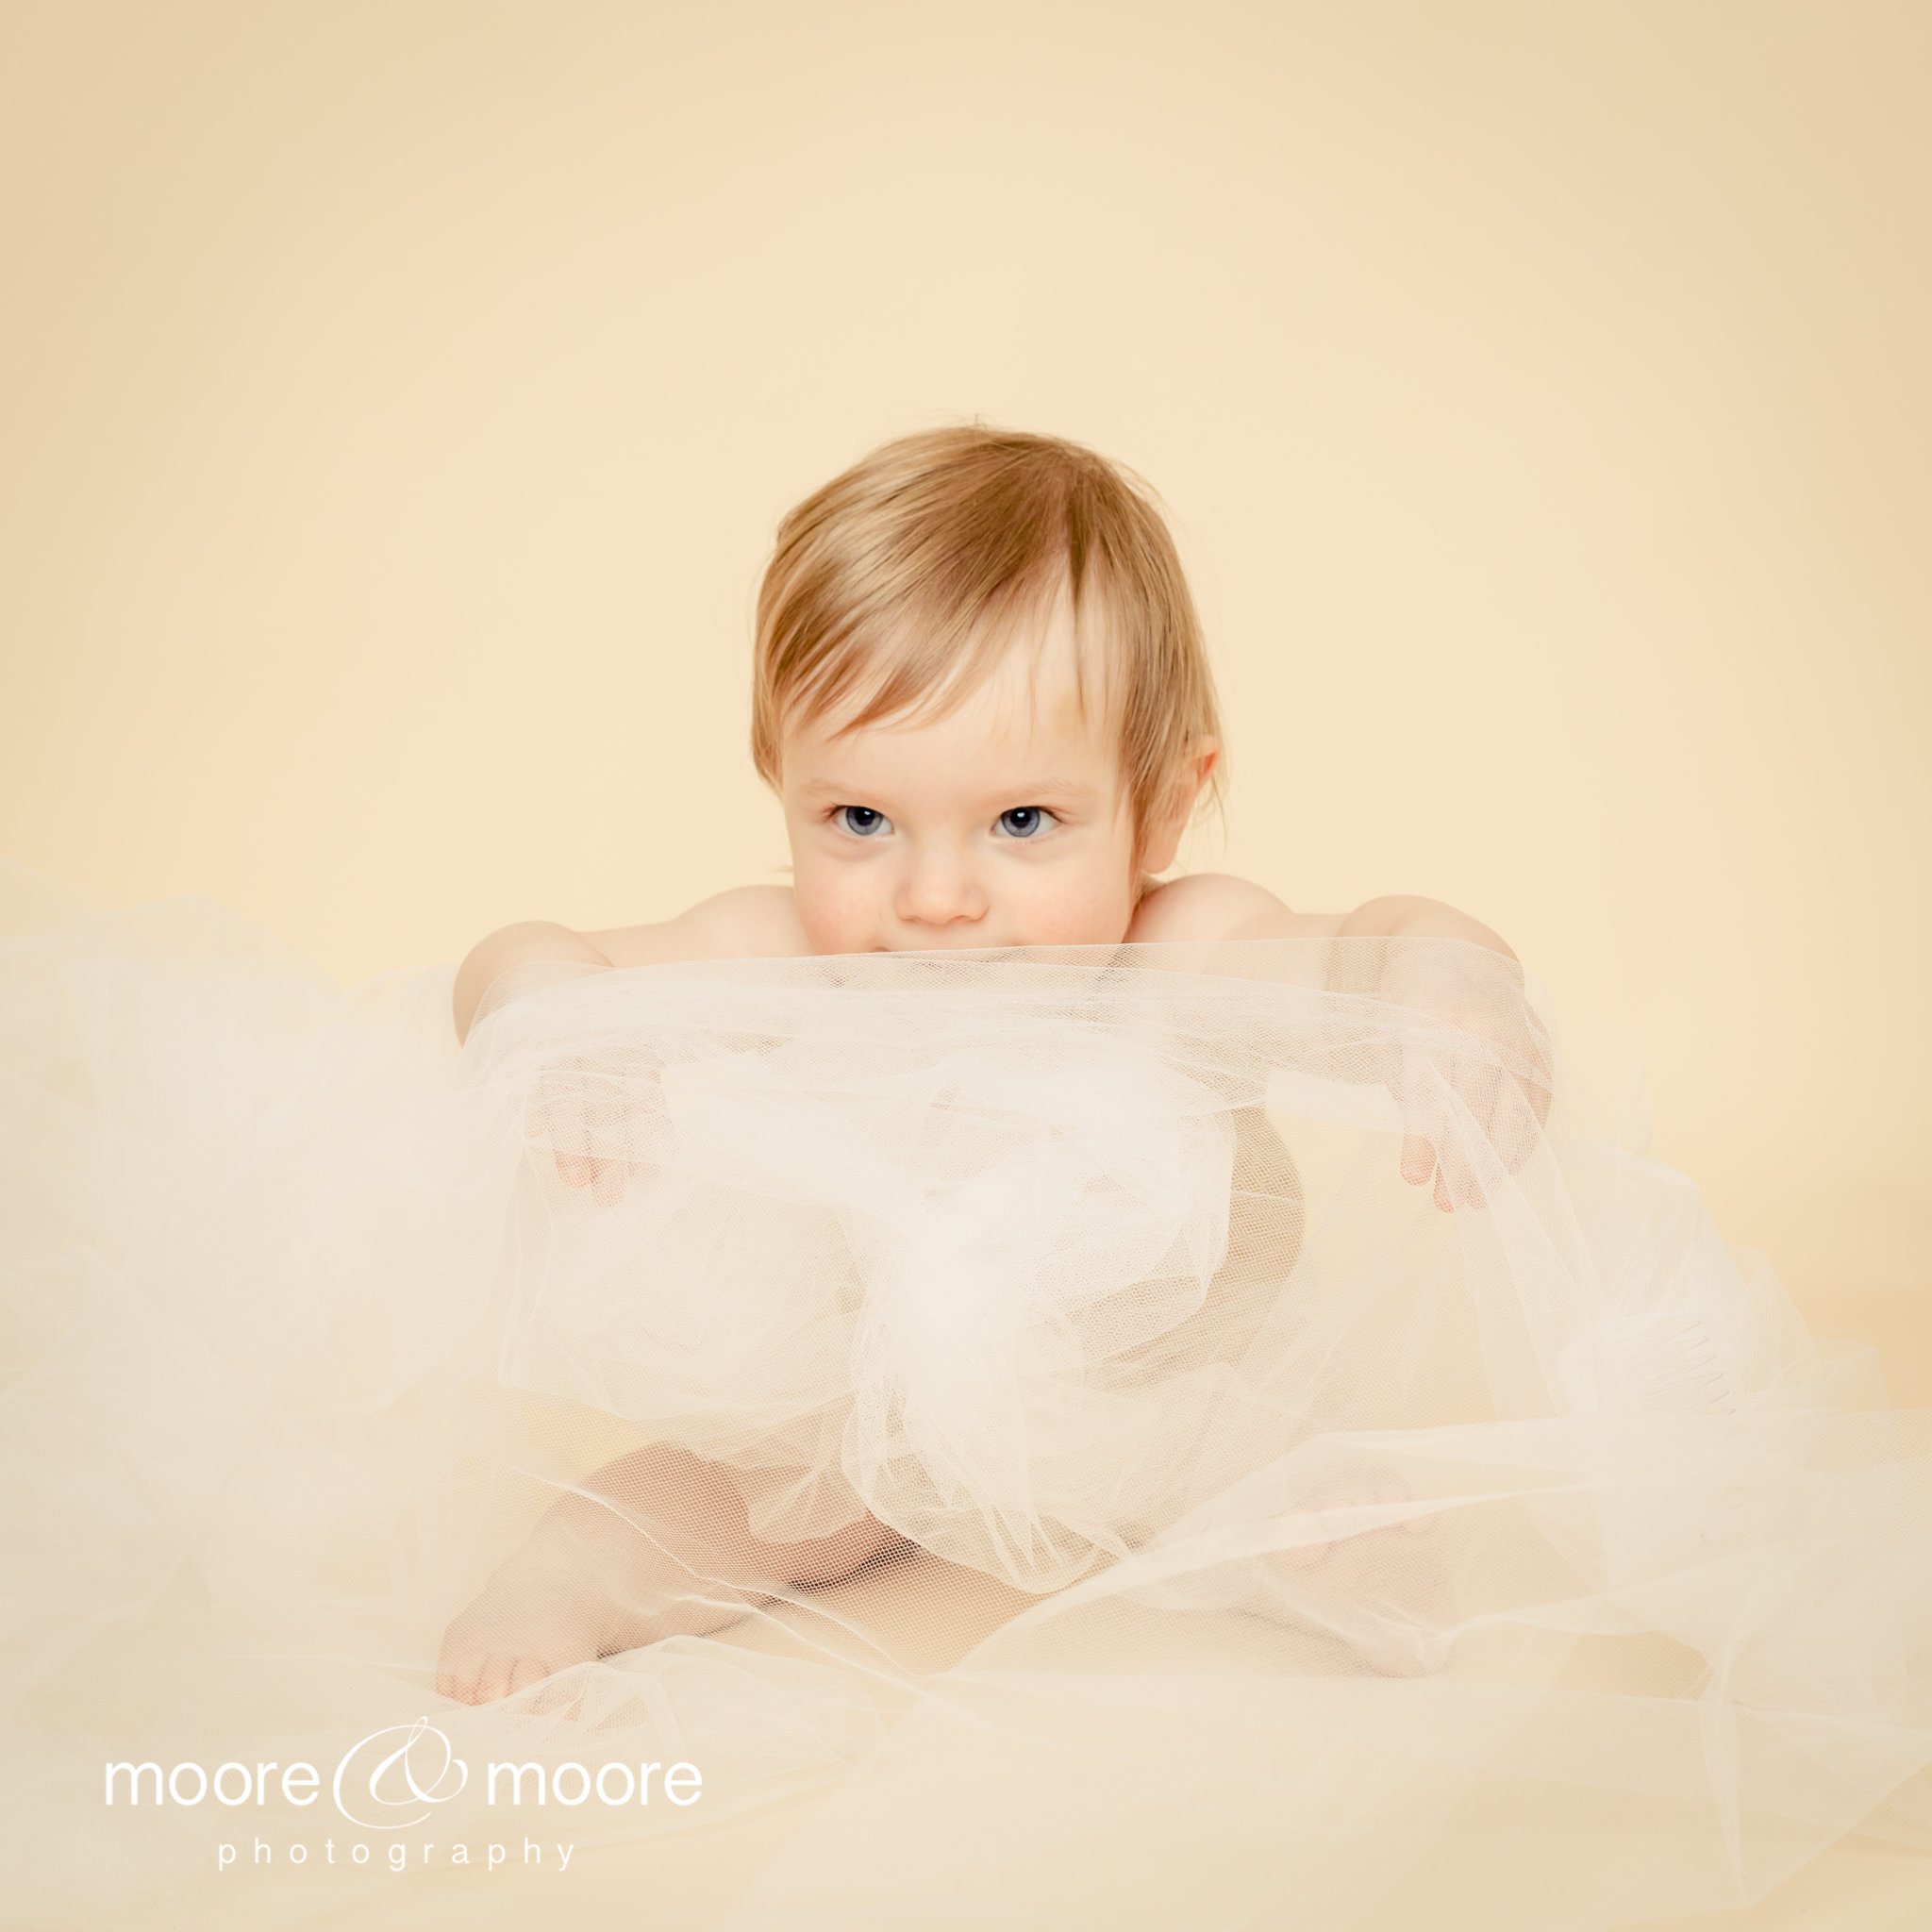 baby portraits by photographer hampshire, moore&moore photography